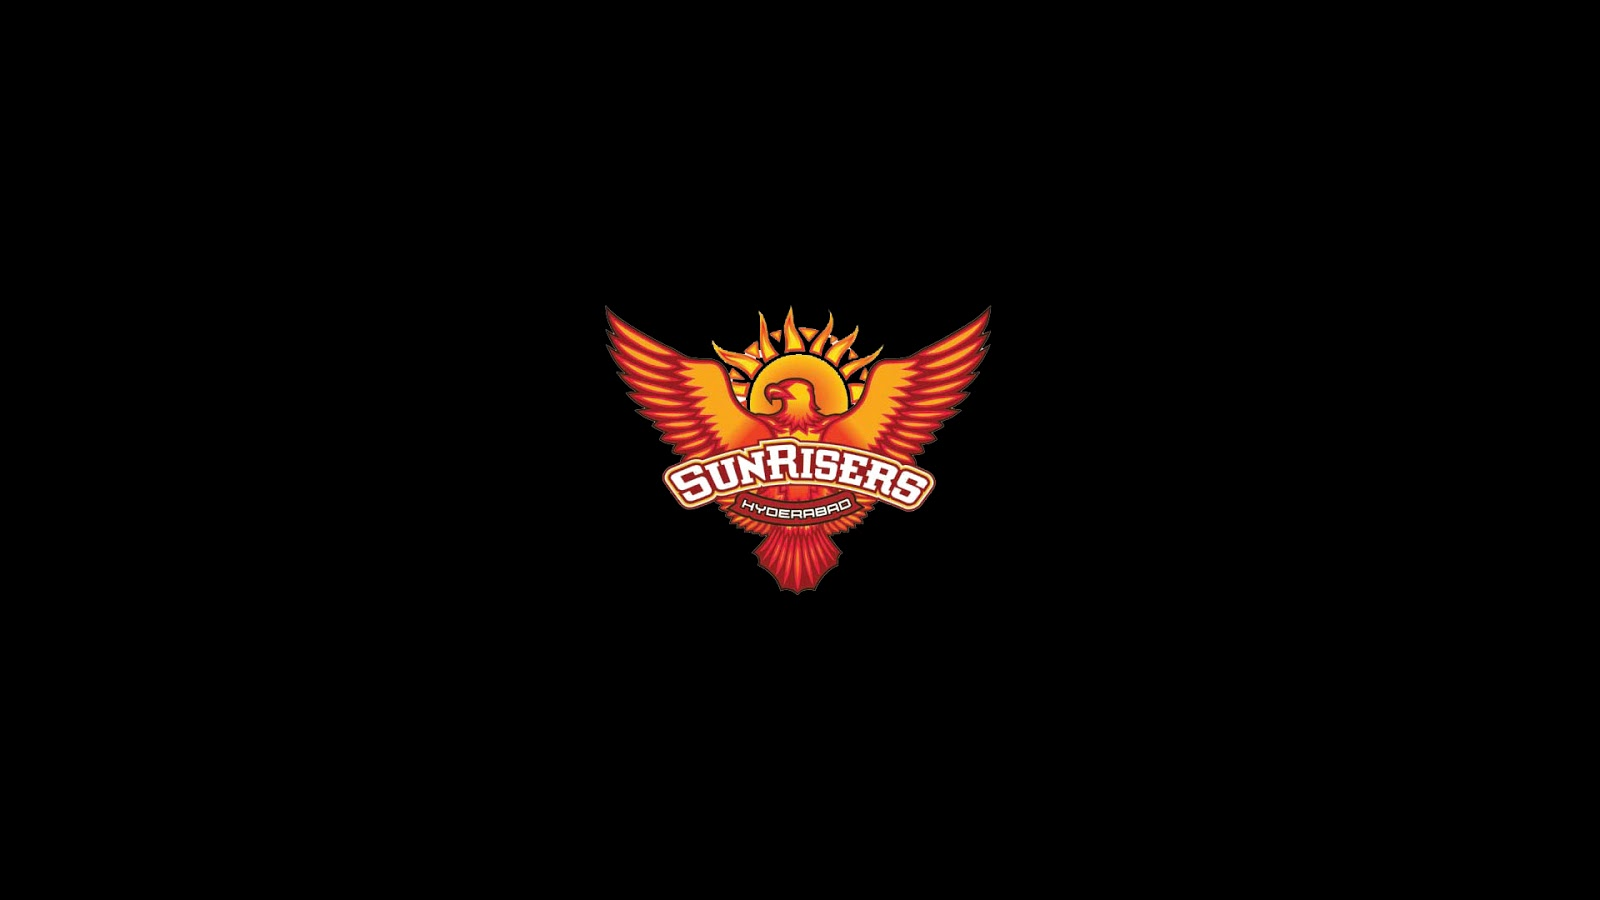 Sun risers hyderabad download hd wallpapers for free all about tuesday may 28 2013 voltagebd Choice Image